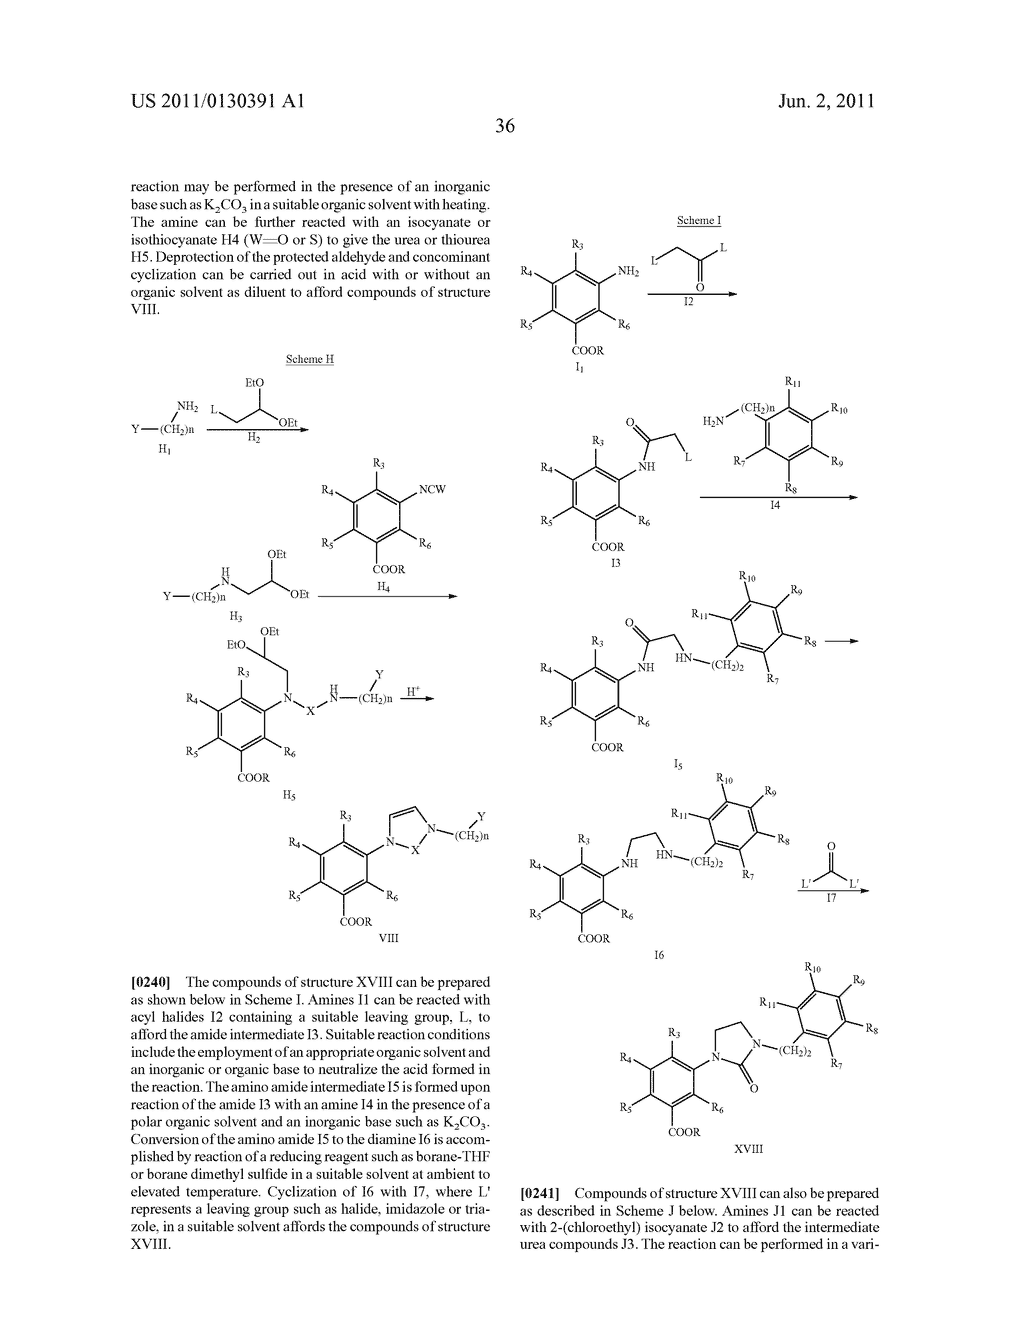 UREIDO SUBSTITUTED BENZOIC ACID COMPOUNDS AND THEIR USE FOR NONSENSE     SUPPRESSION AND THE TREATMENT OF DISEASE - diagram, schematic, and image 37